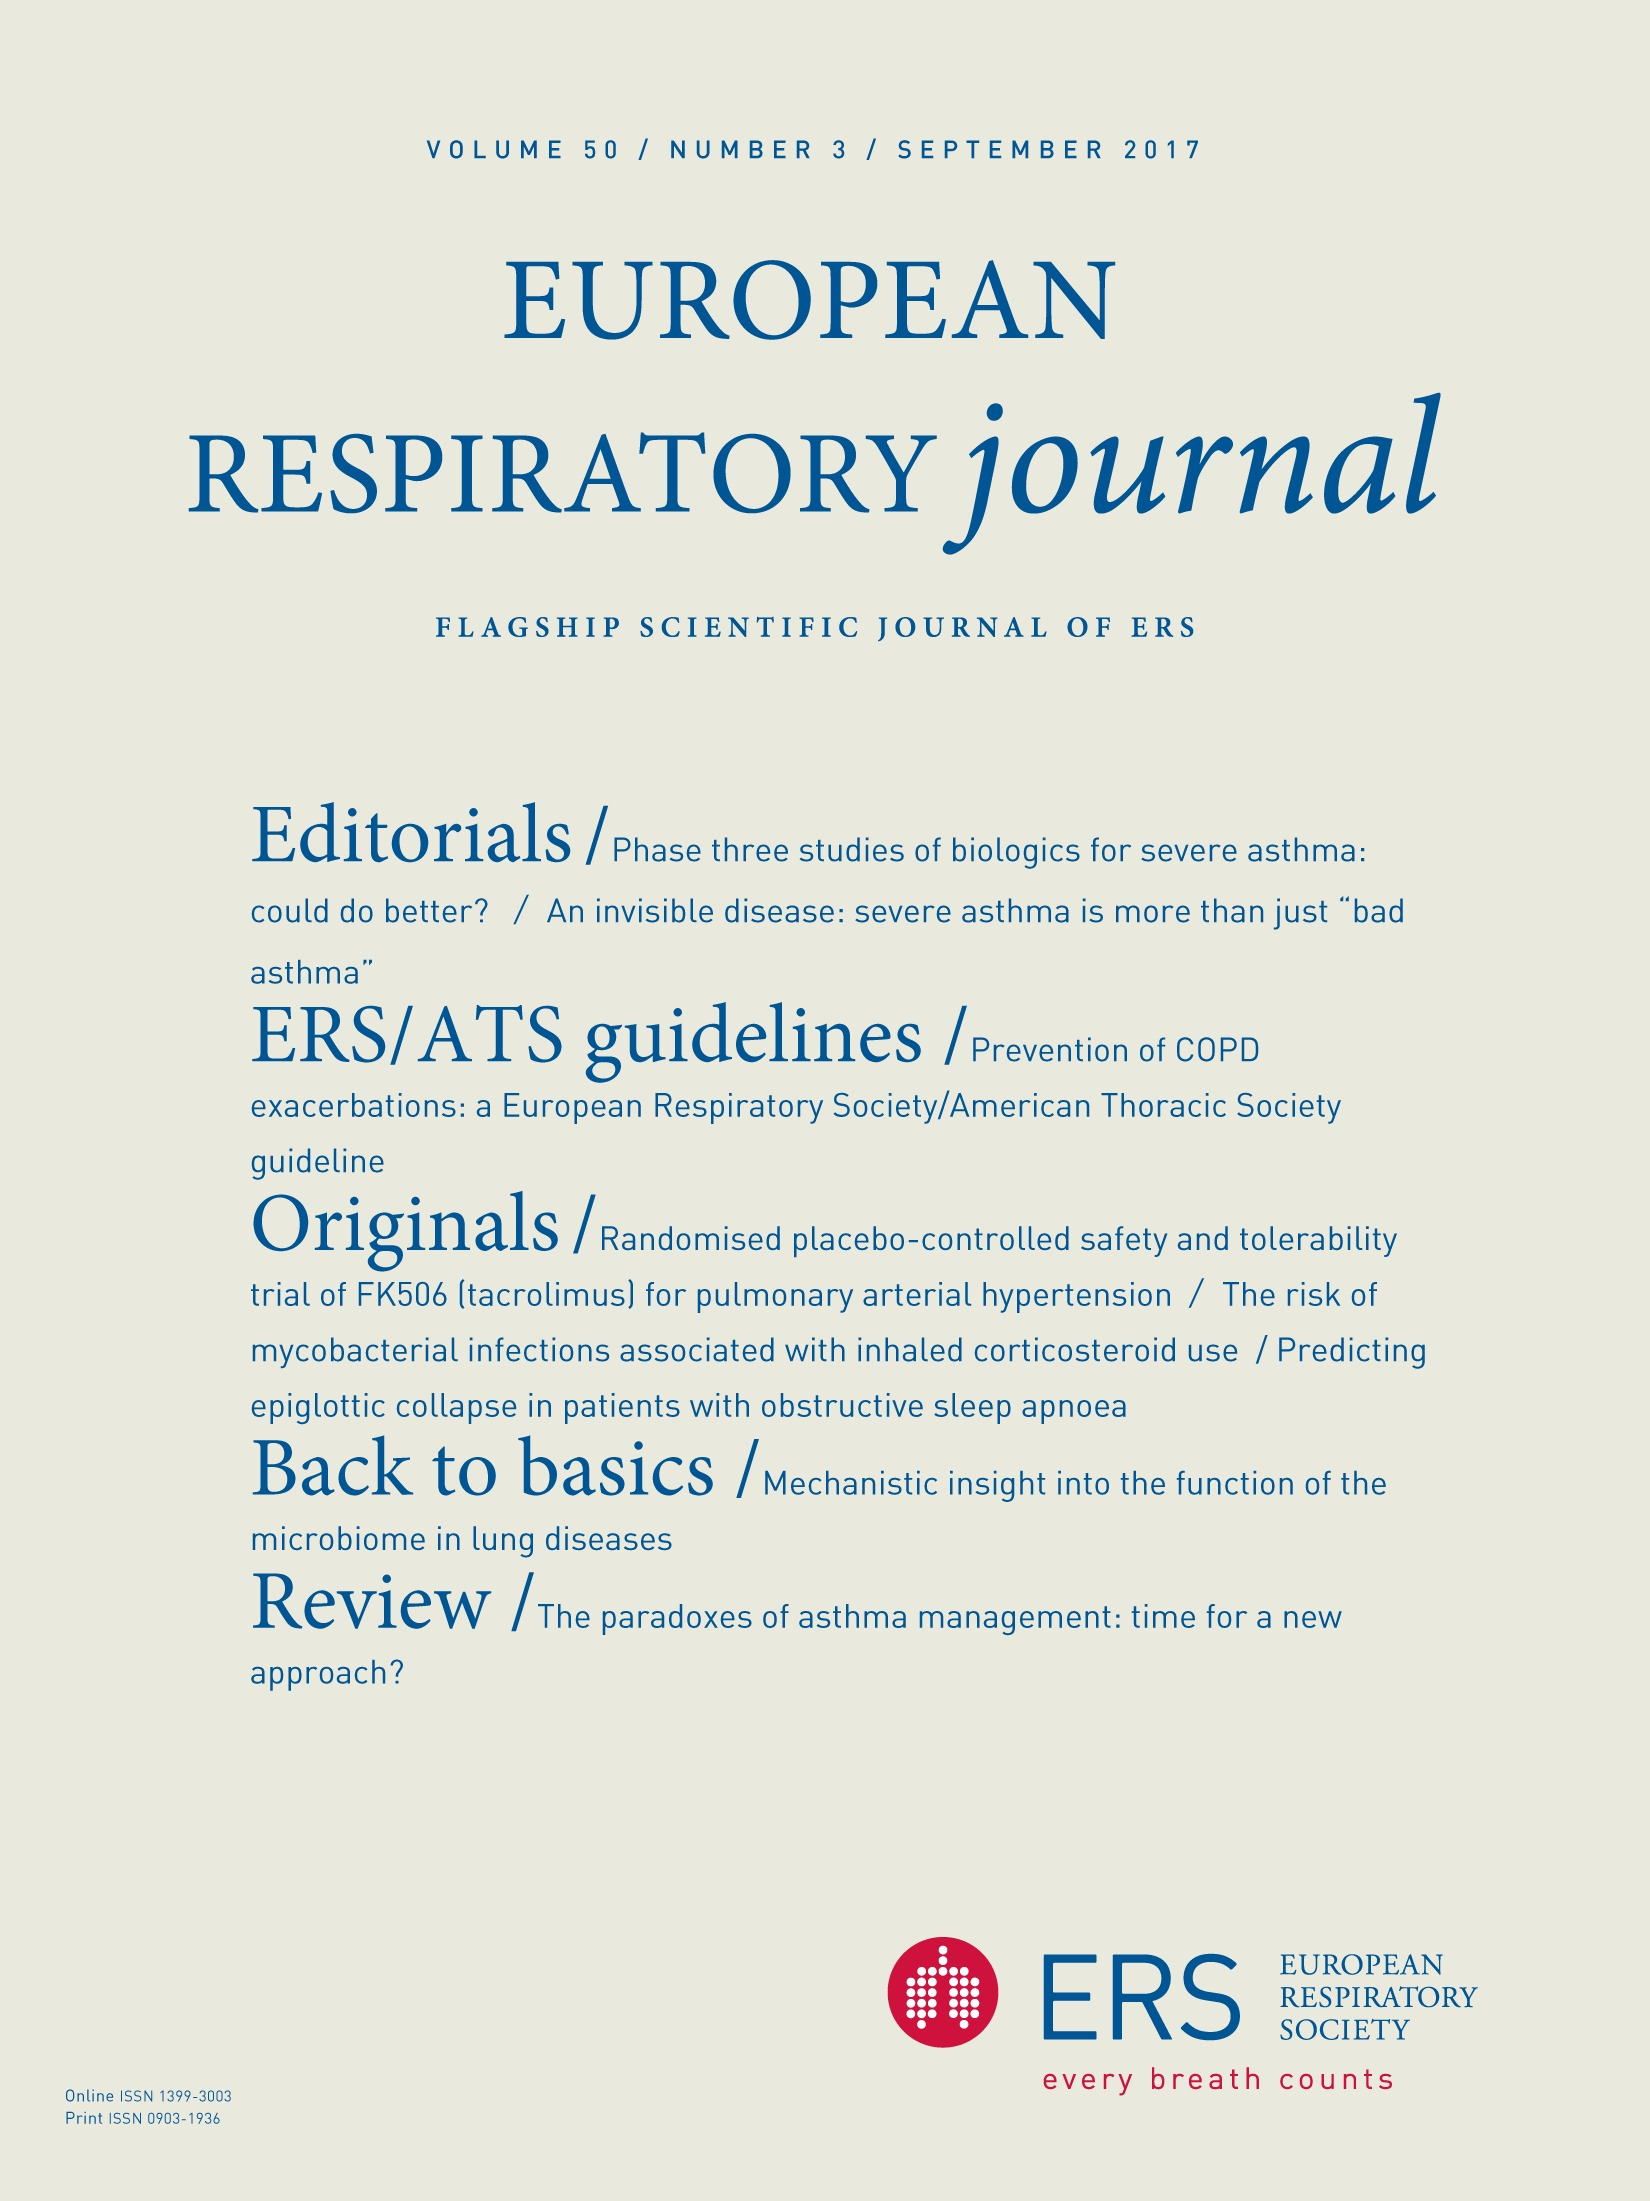 Inducible laryngeal obstruction: an official joint European